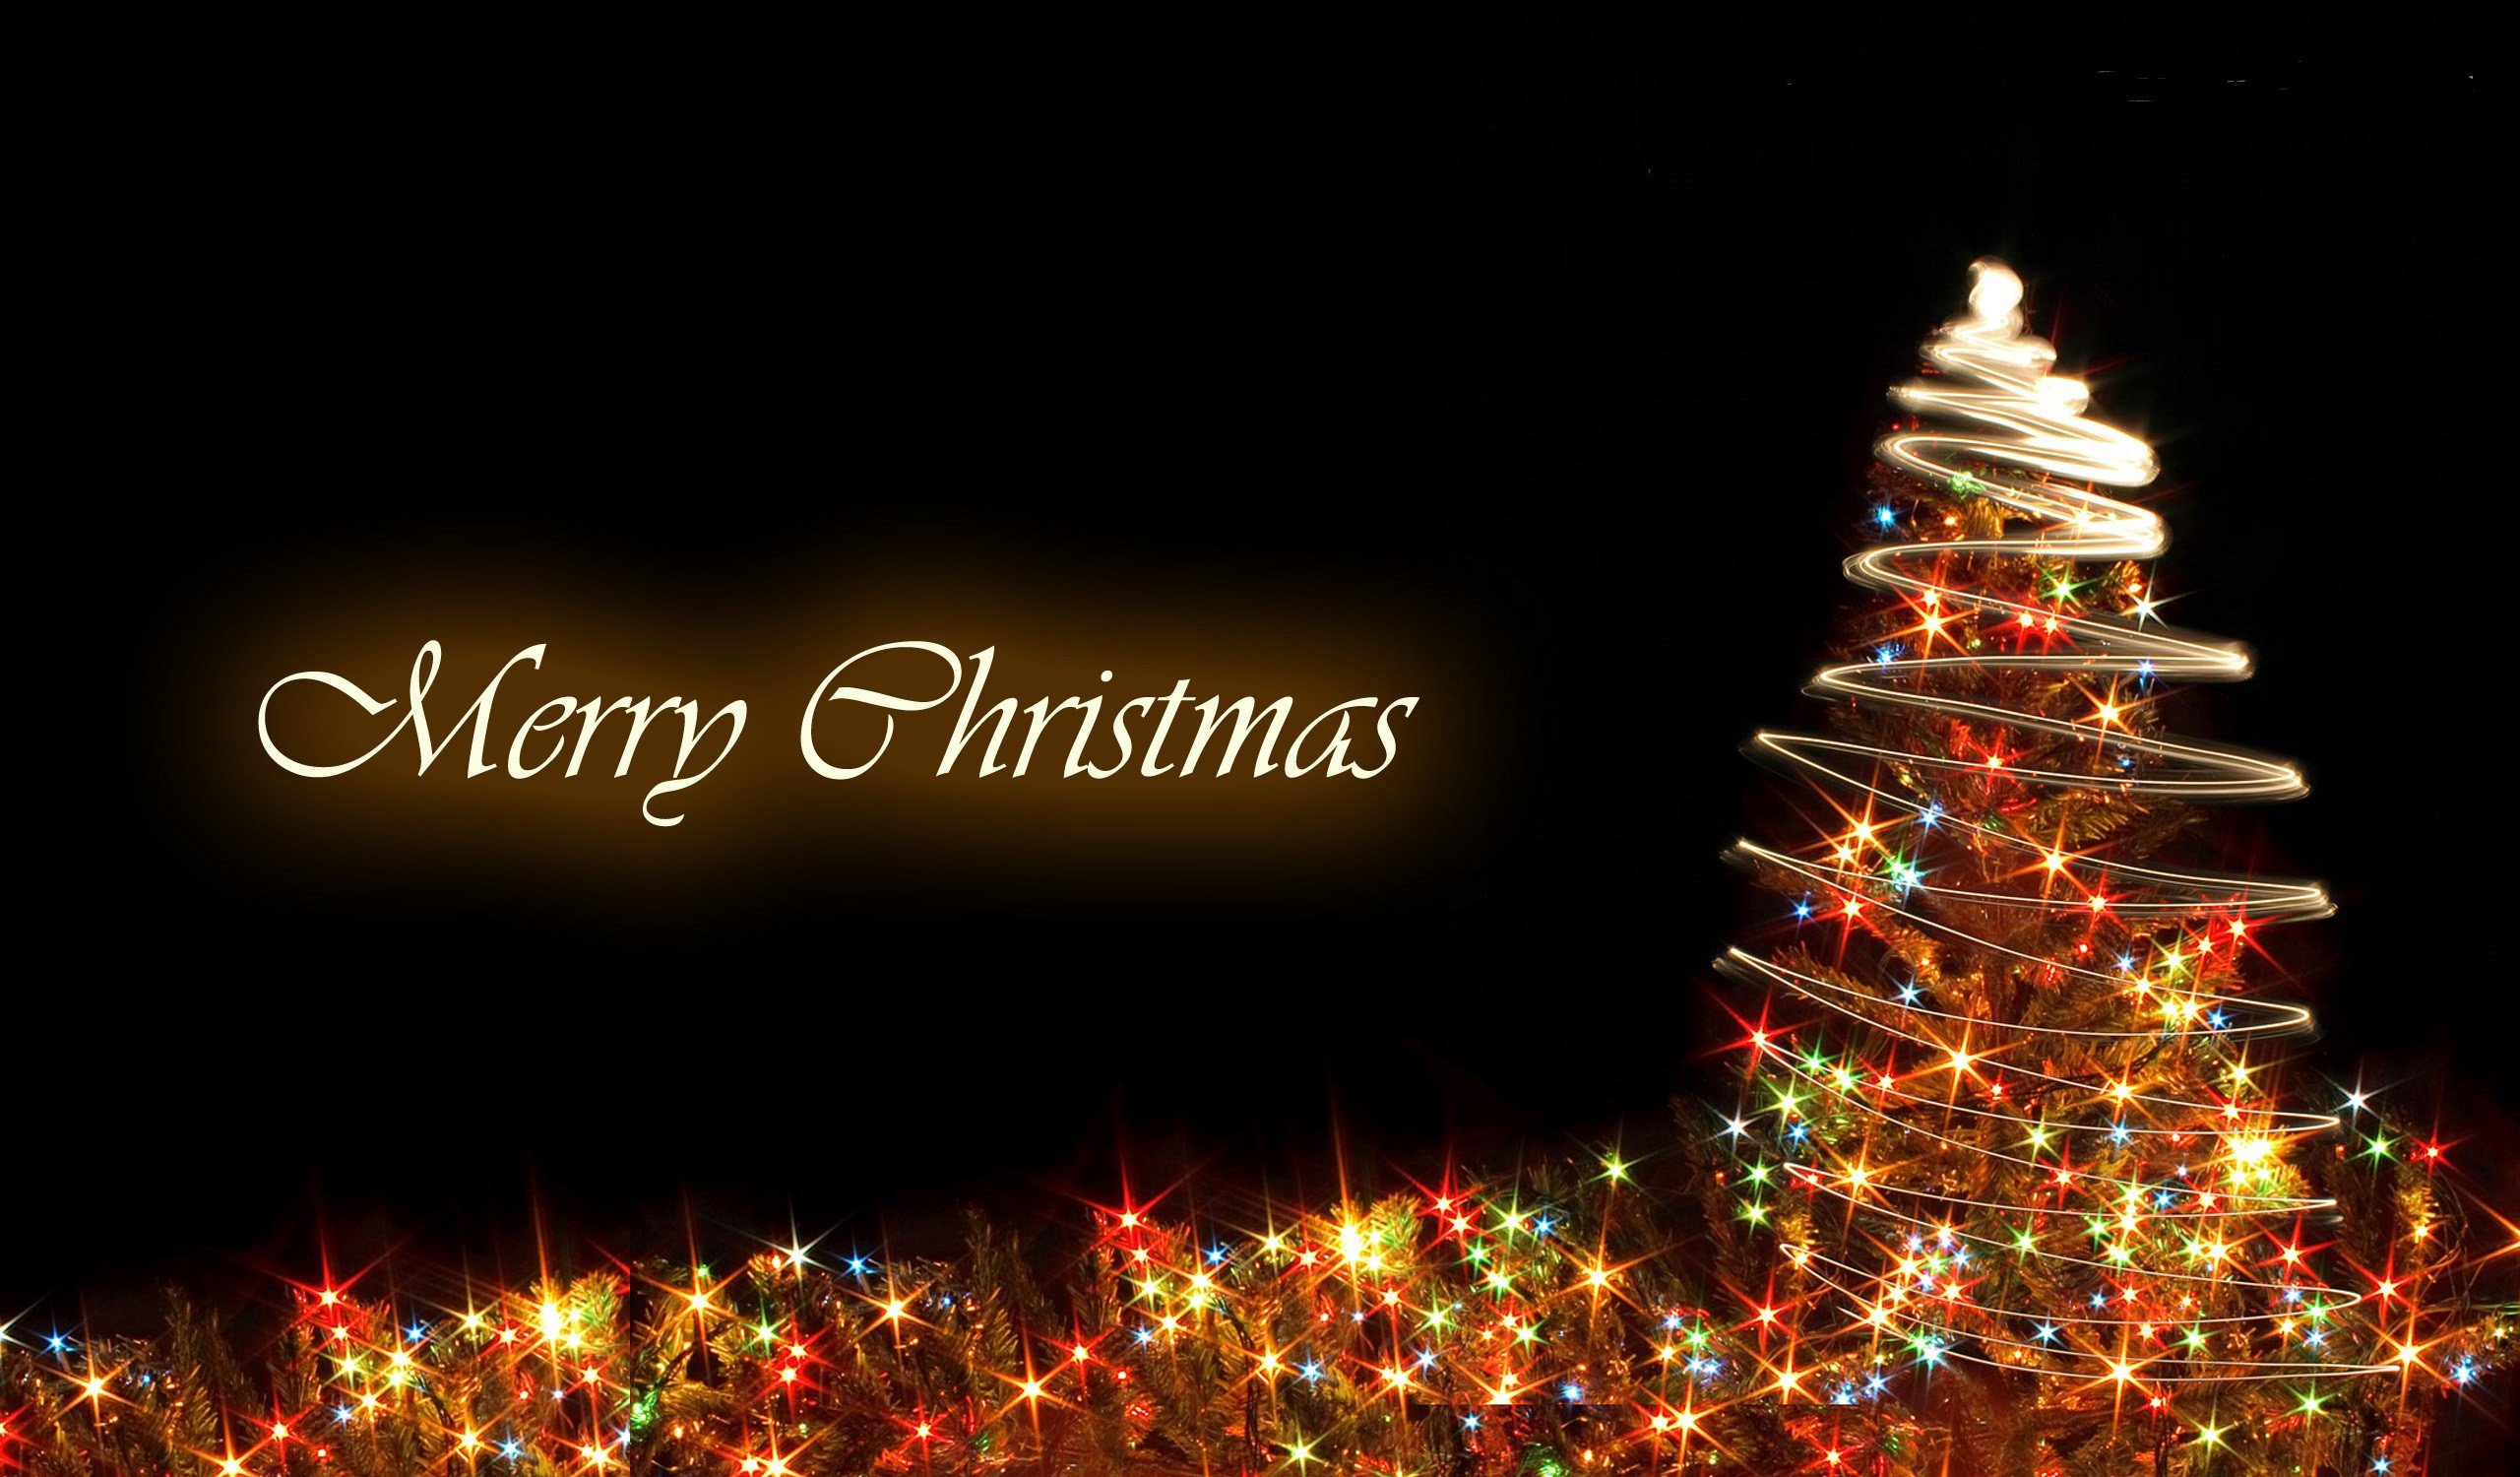 Free Christmas Desktop Wallpaper Merry Christmas Wallpapers Hd Free